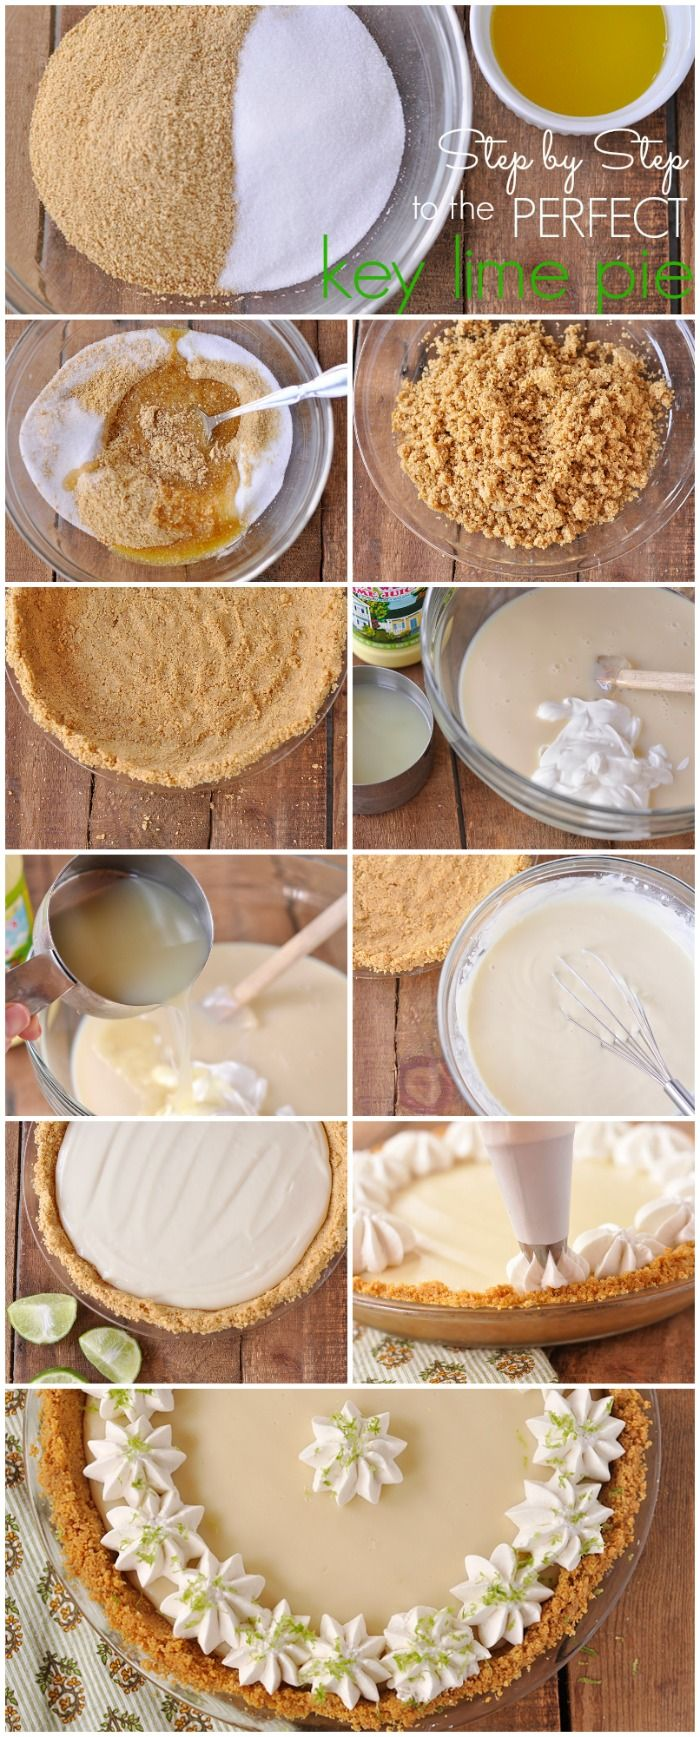 A great step by step key lime pie tutorial from yourhomebasedmom.com